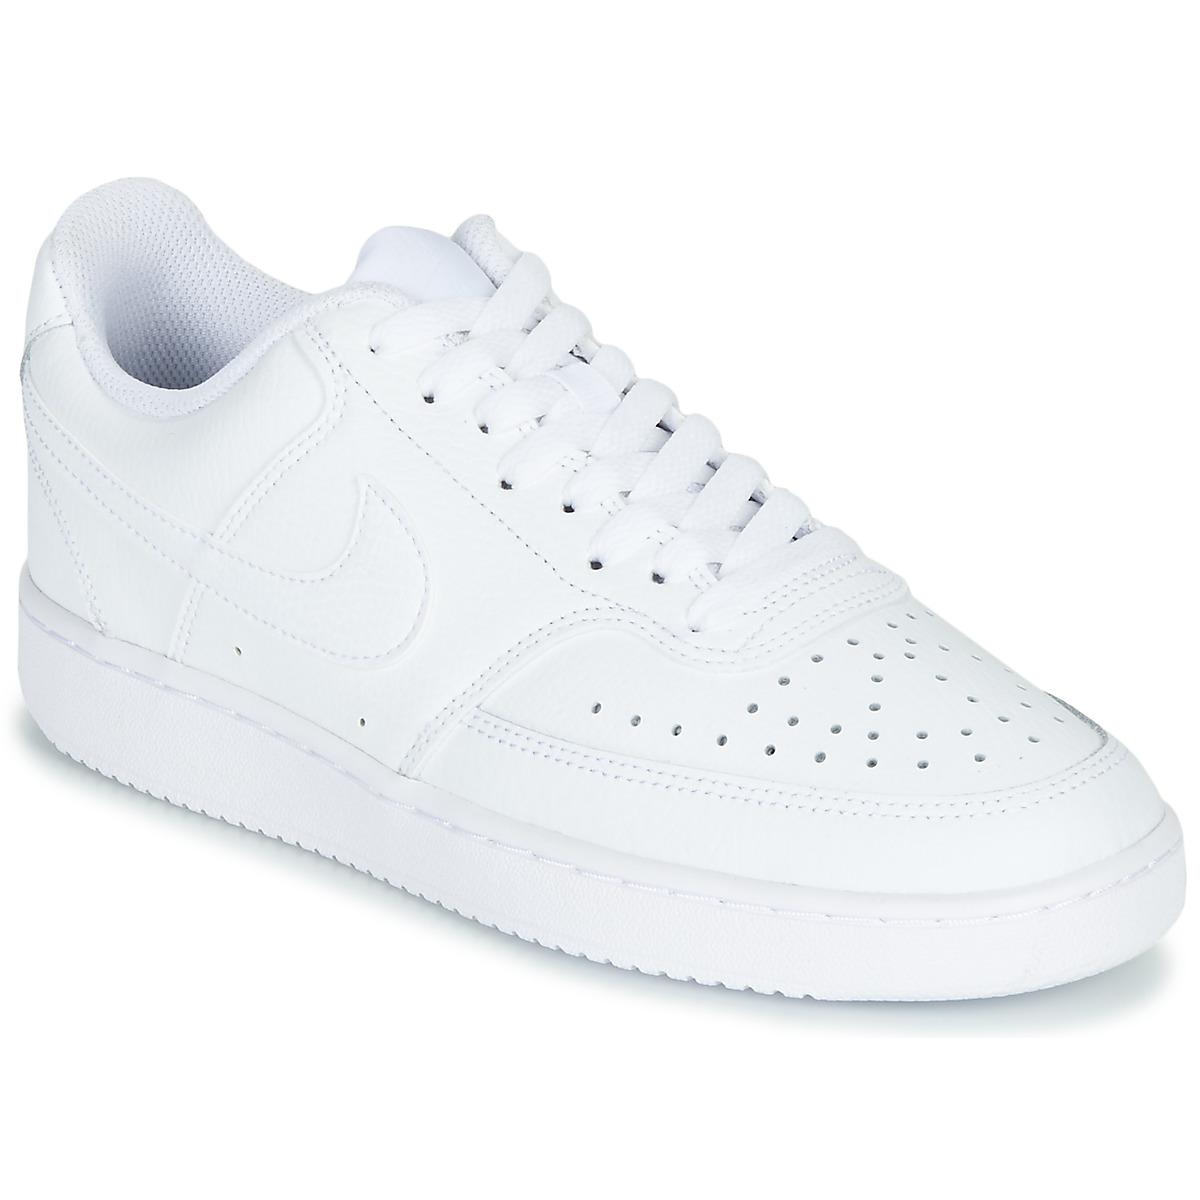 Nike COURT VISION LOW White - Fast